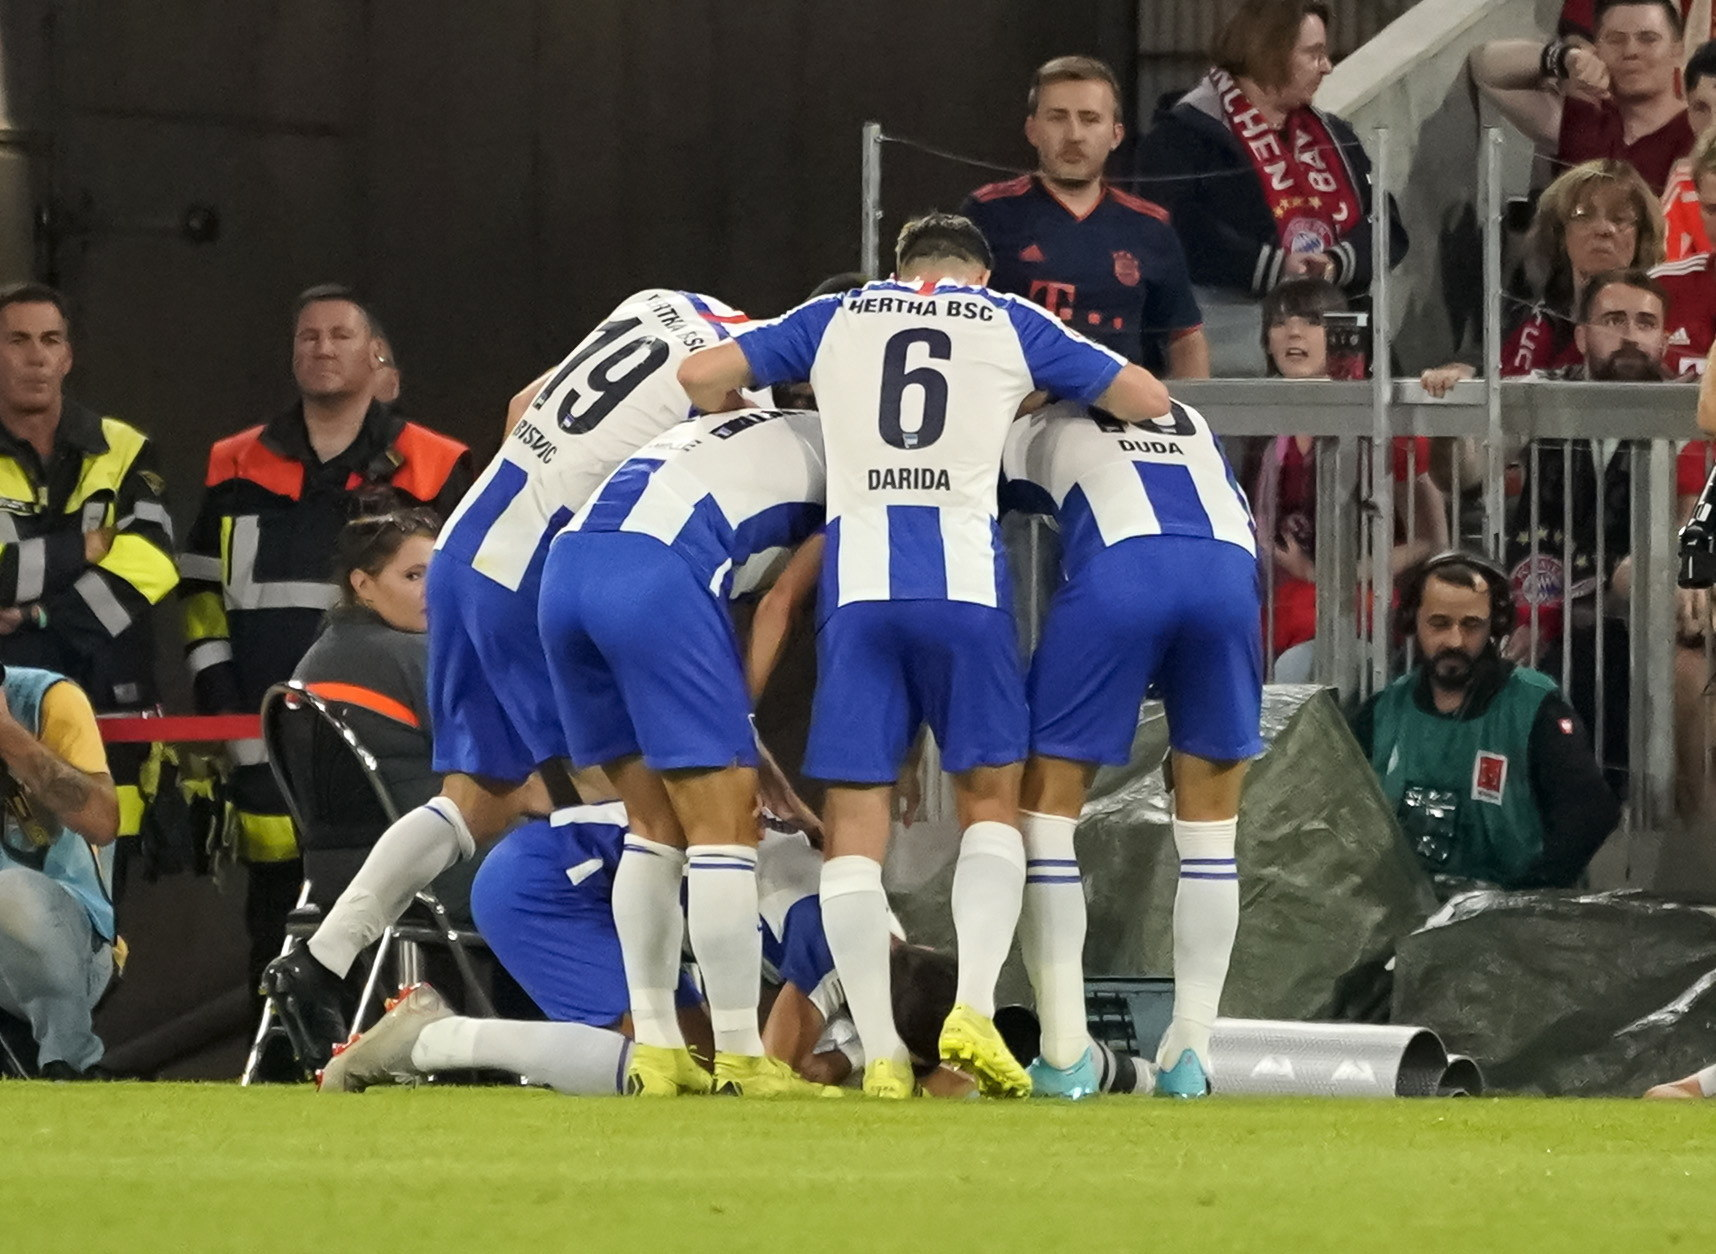 Munich (Germany), 16/08/2019.- Hertha players celebrate after scoring the 2-1 lead during the German Bundesliga soccer match between FC <HIT>Bayern</HIT> Munich and Hertha BSC Berlin in Munich, Germany, 16 August 2019. (Alemania) EFE/EPA/RONALD WITTEK CONDITIONS - ATTENTION: The DFL regulations prohibit any use of photographs as image sequences and/or quasi-video